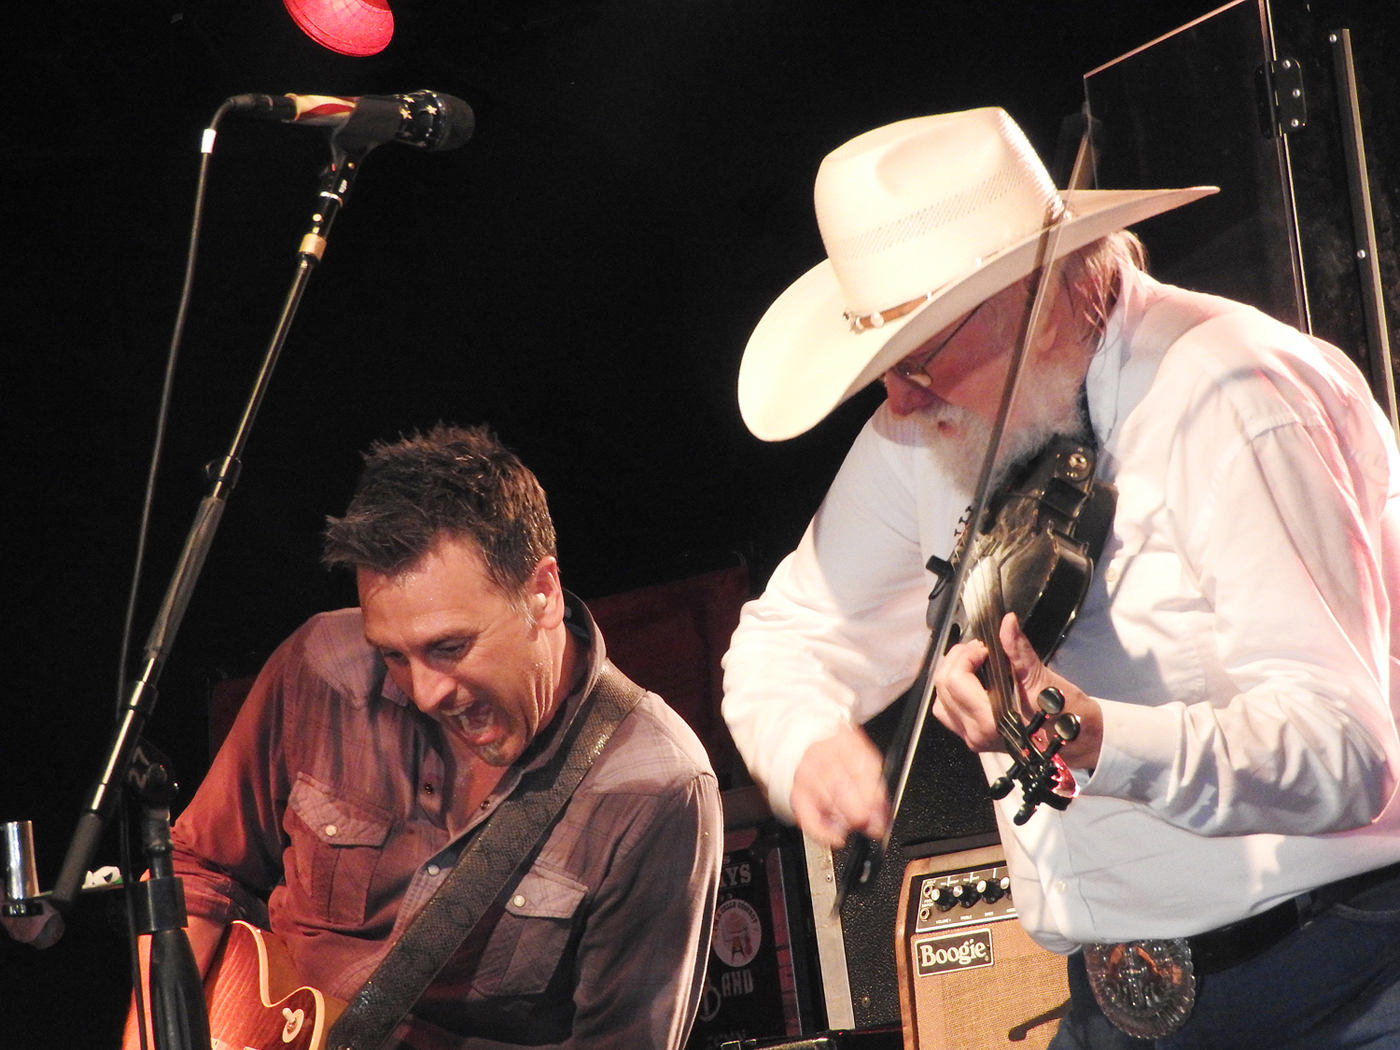 Chris Wormer (left) performs on the guitar next to Charlie Daniels. Photos by Karen Fien